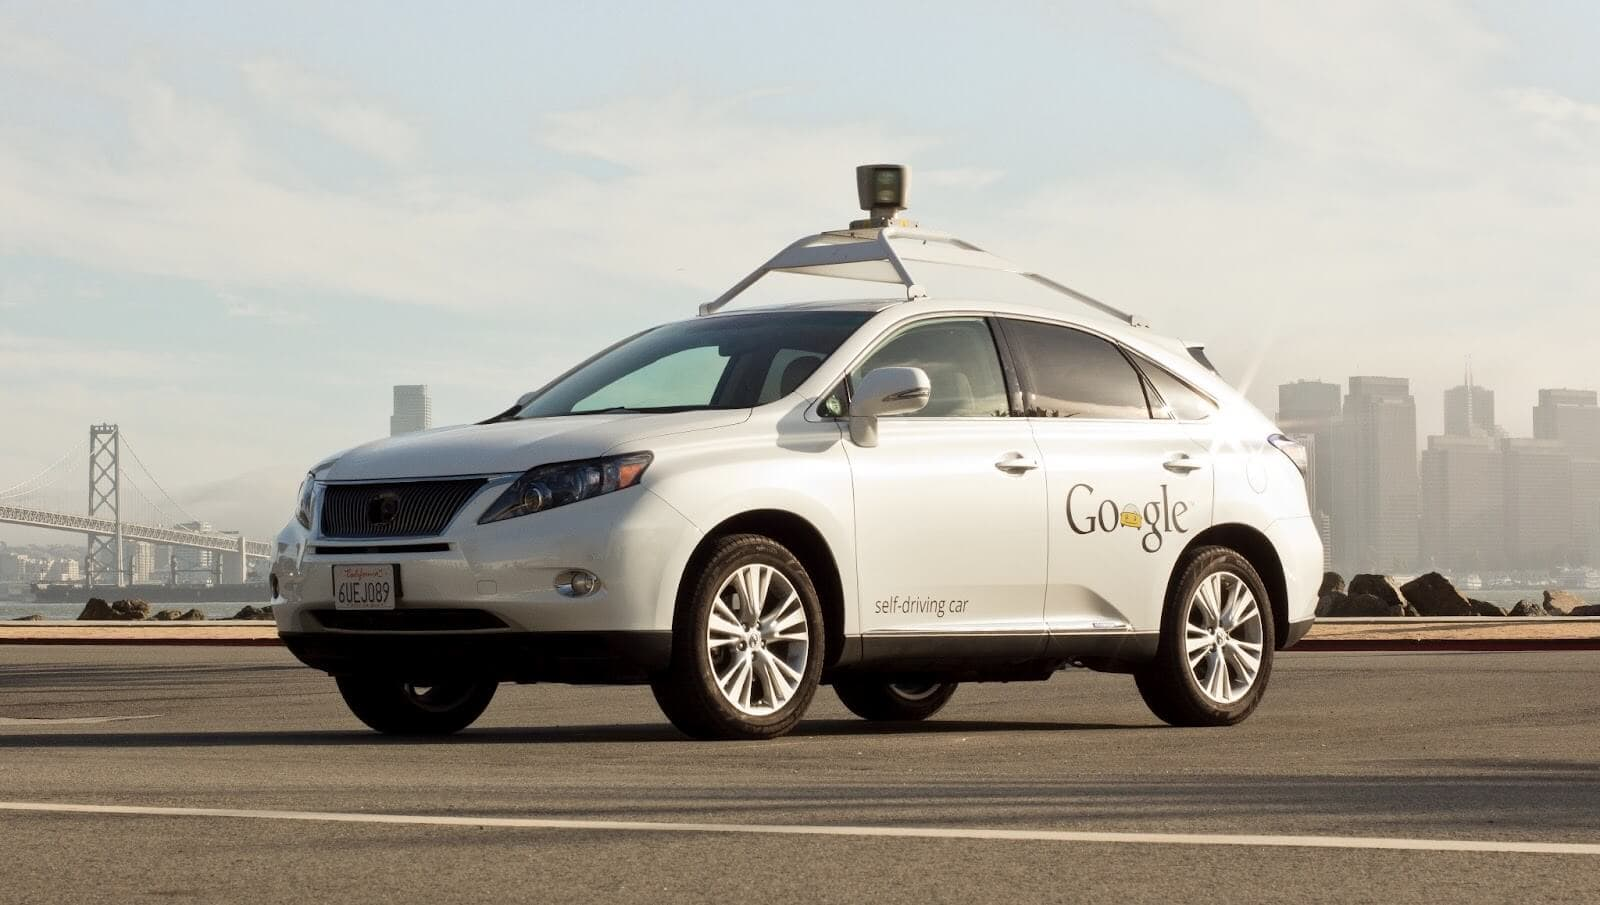 How Does Google's Self-Driving Car Work?